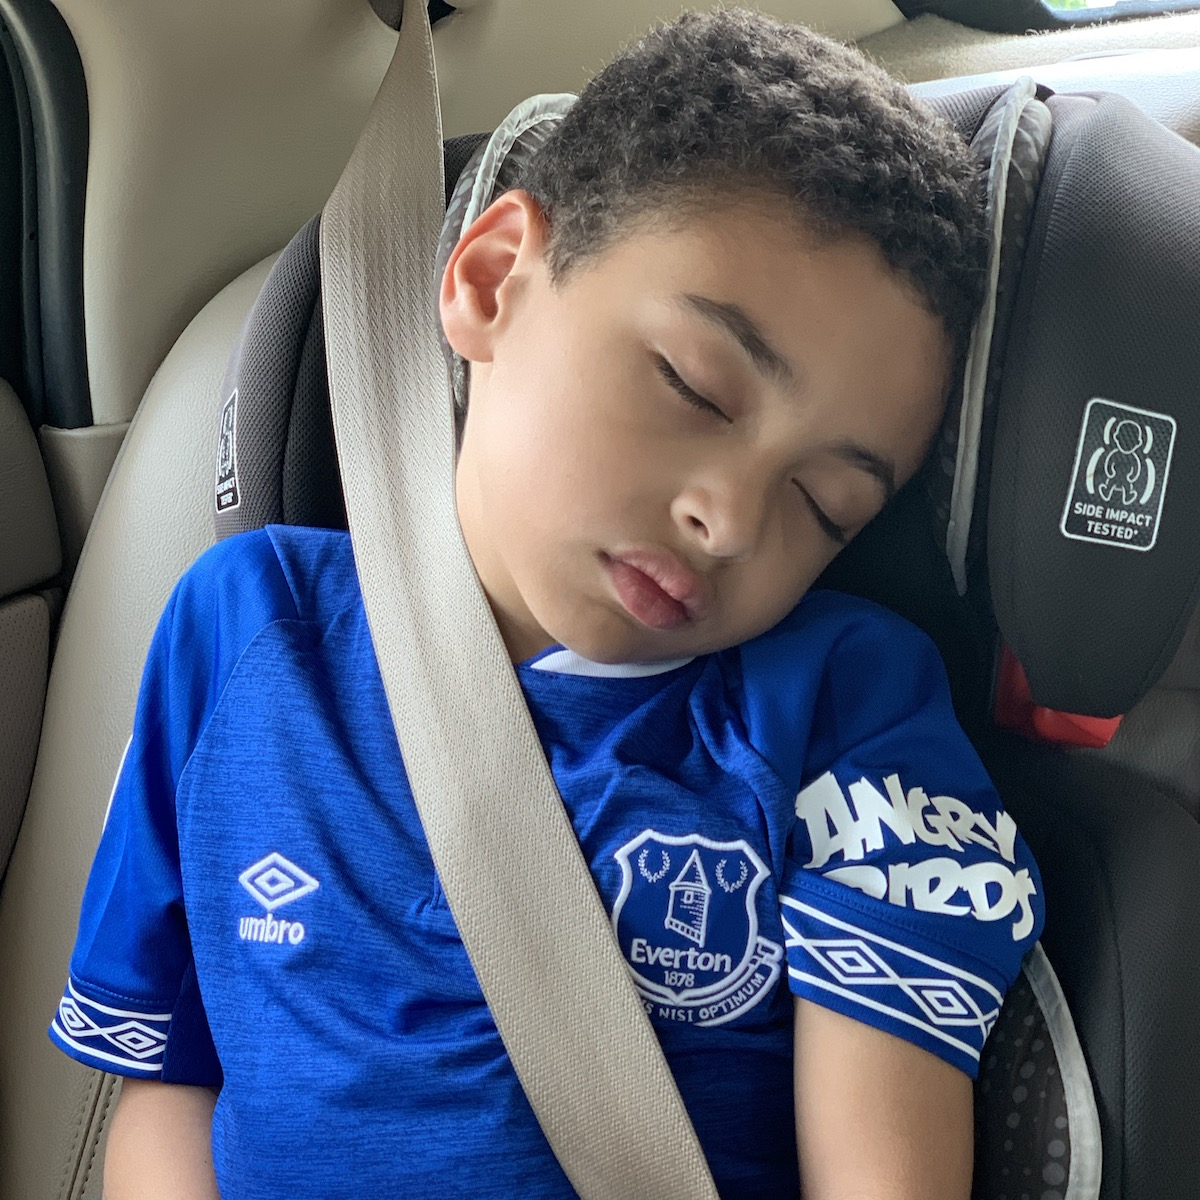 A tuckered out young boy, May 2019